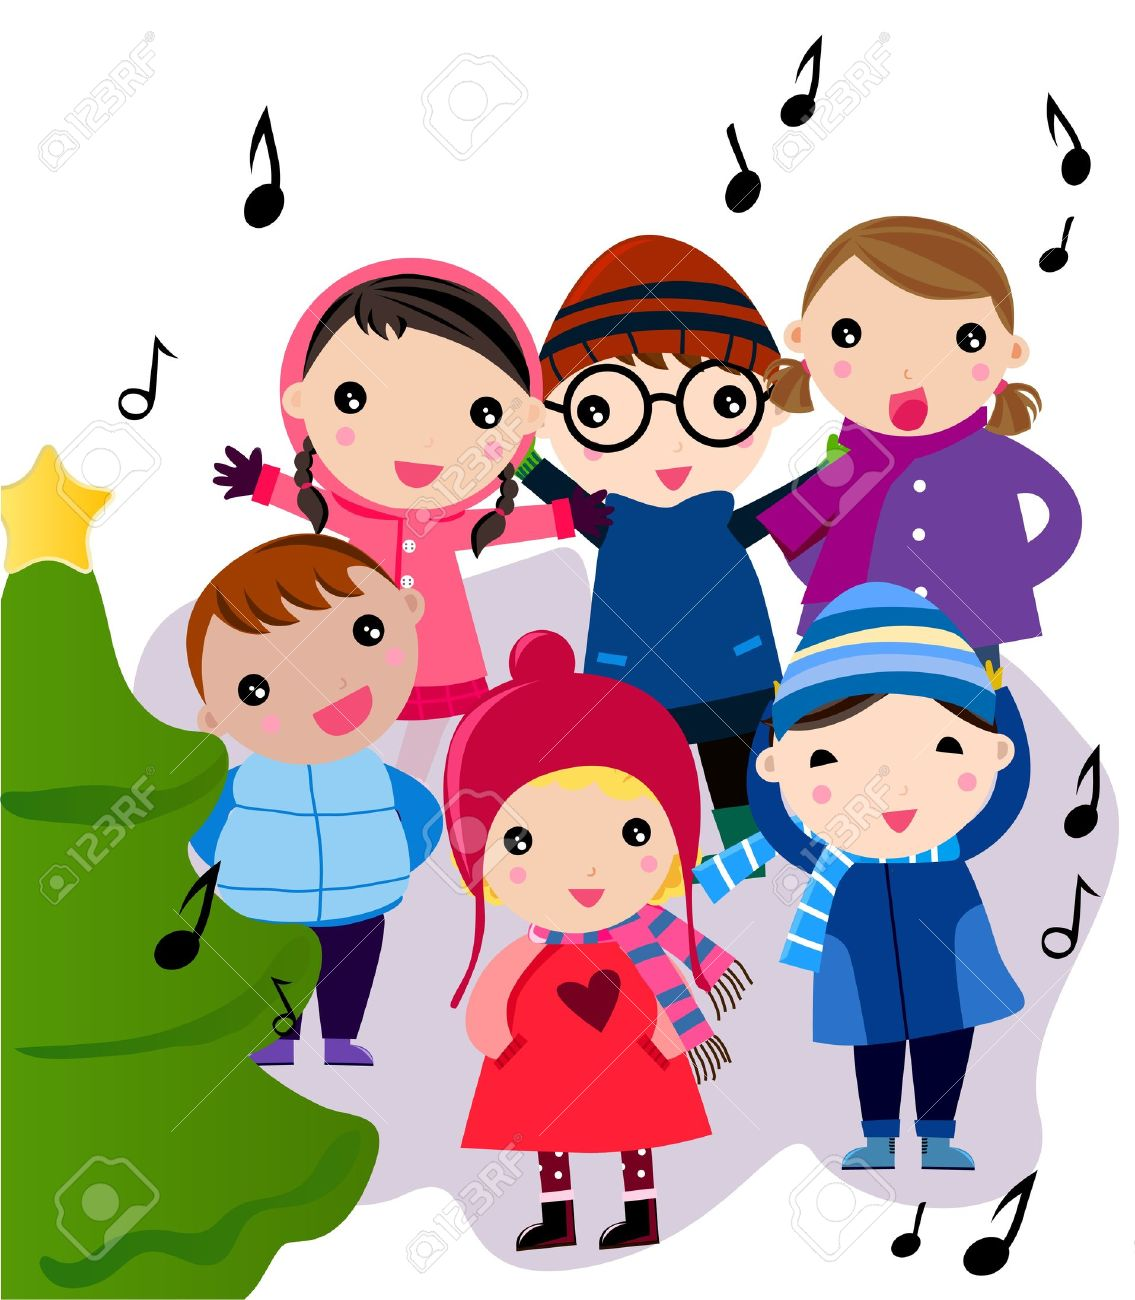 Carol singers clipart - Clipground